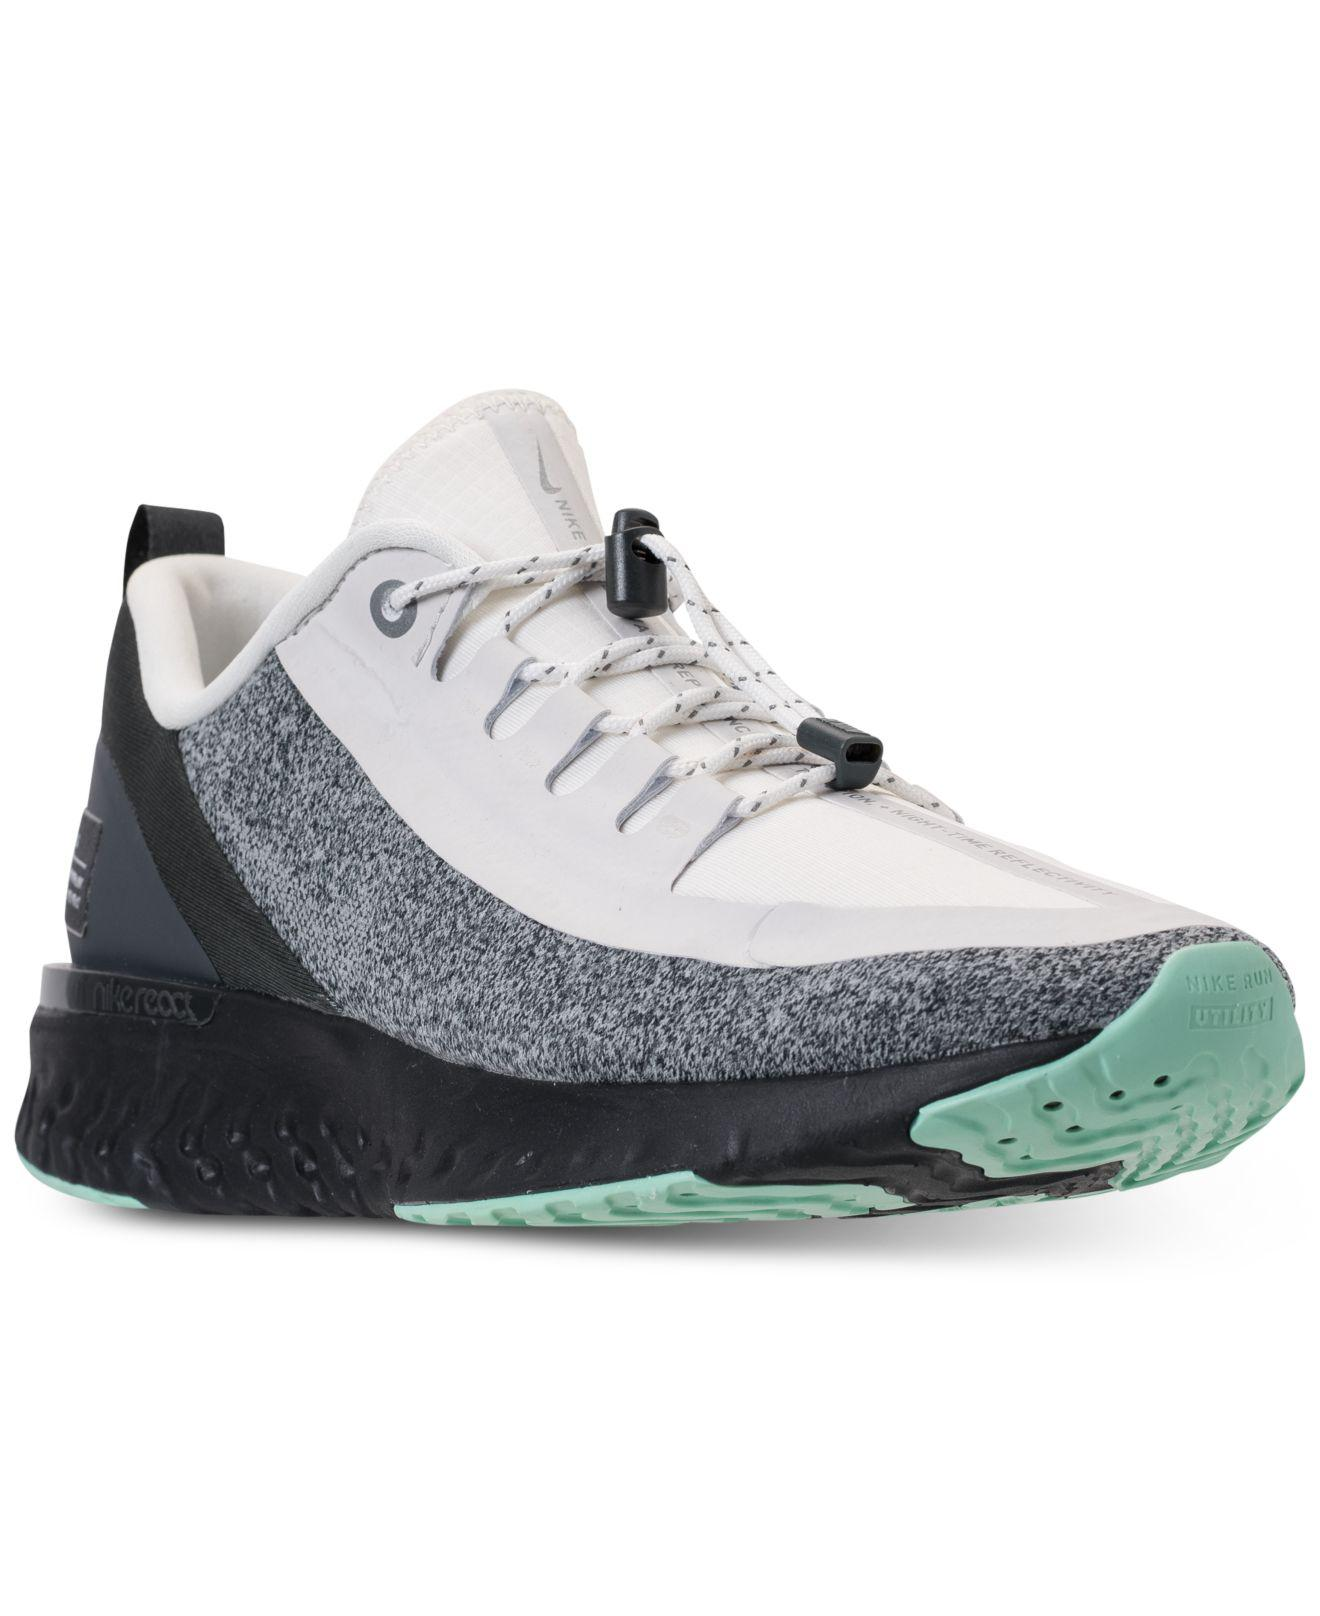 ac5199ce076 Nike - Multicolor Odyssey React Shield Running Sneakers From Finish Line -  Lyst. View fullscreen